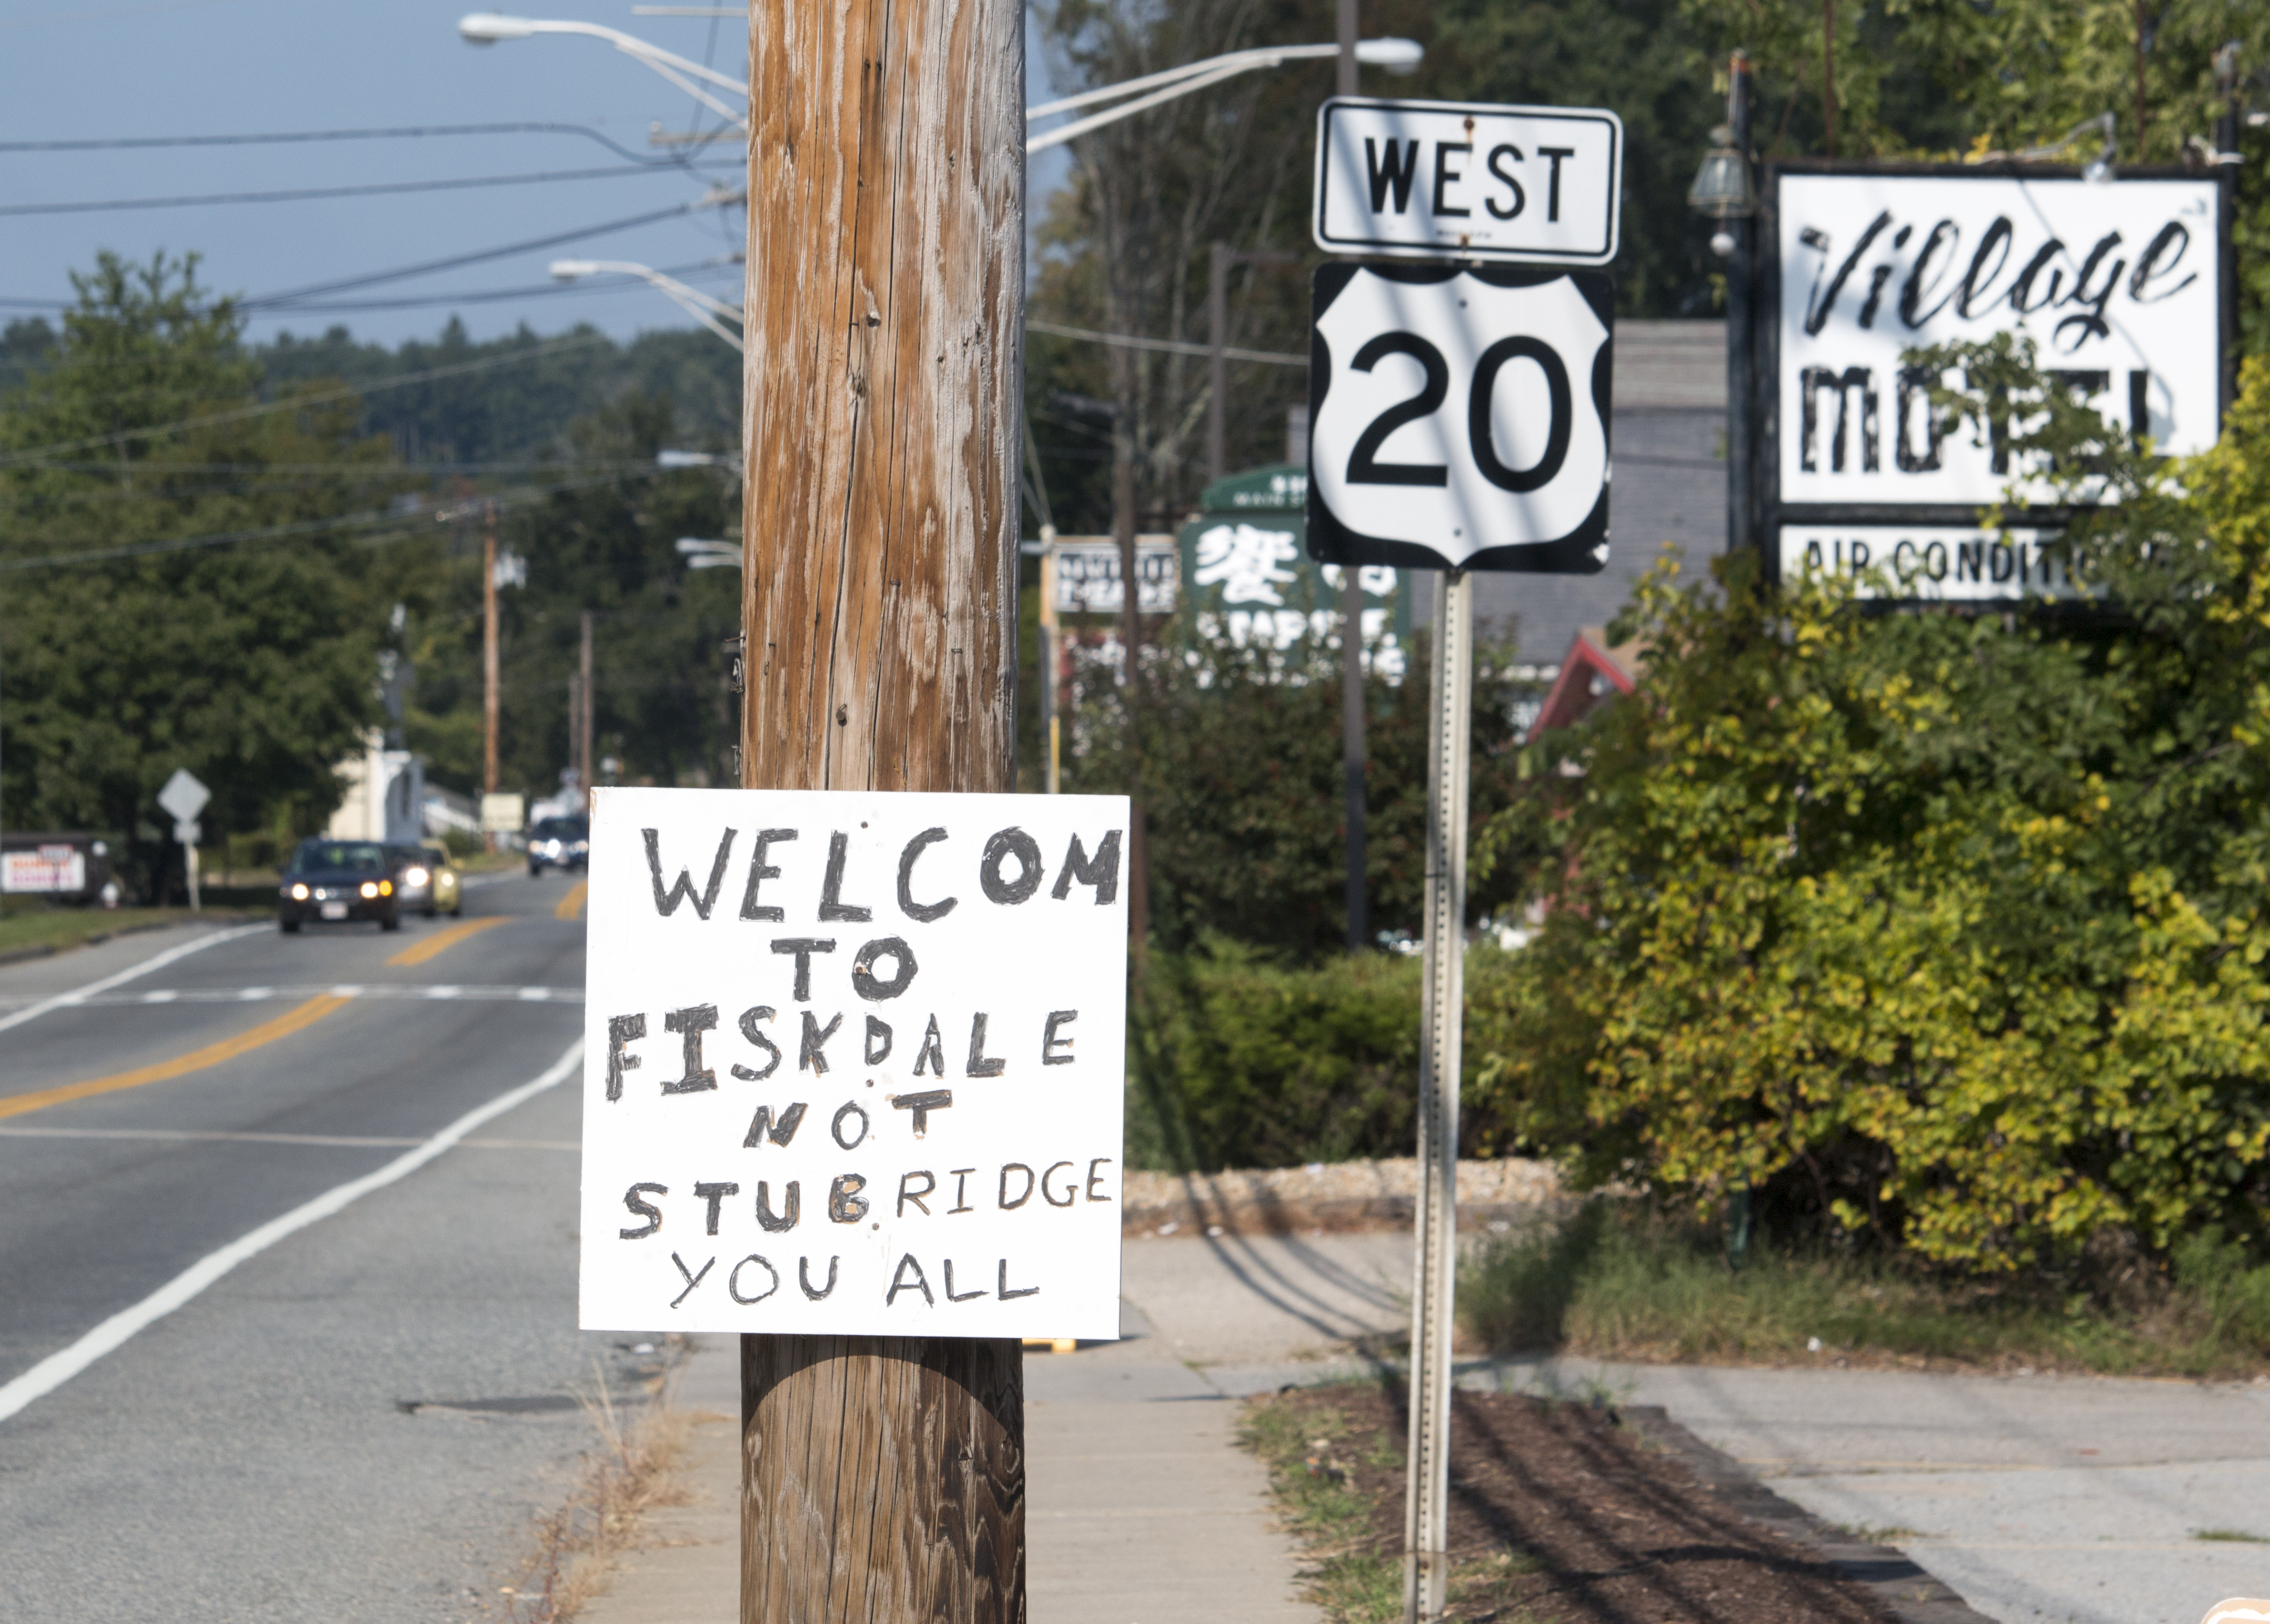 Homemade sign draws ire and chuckles in Fiskdale